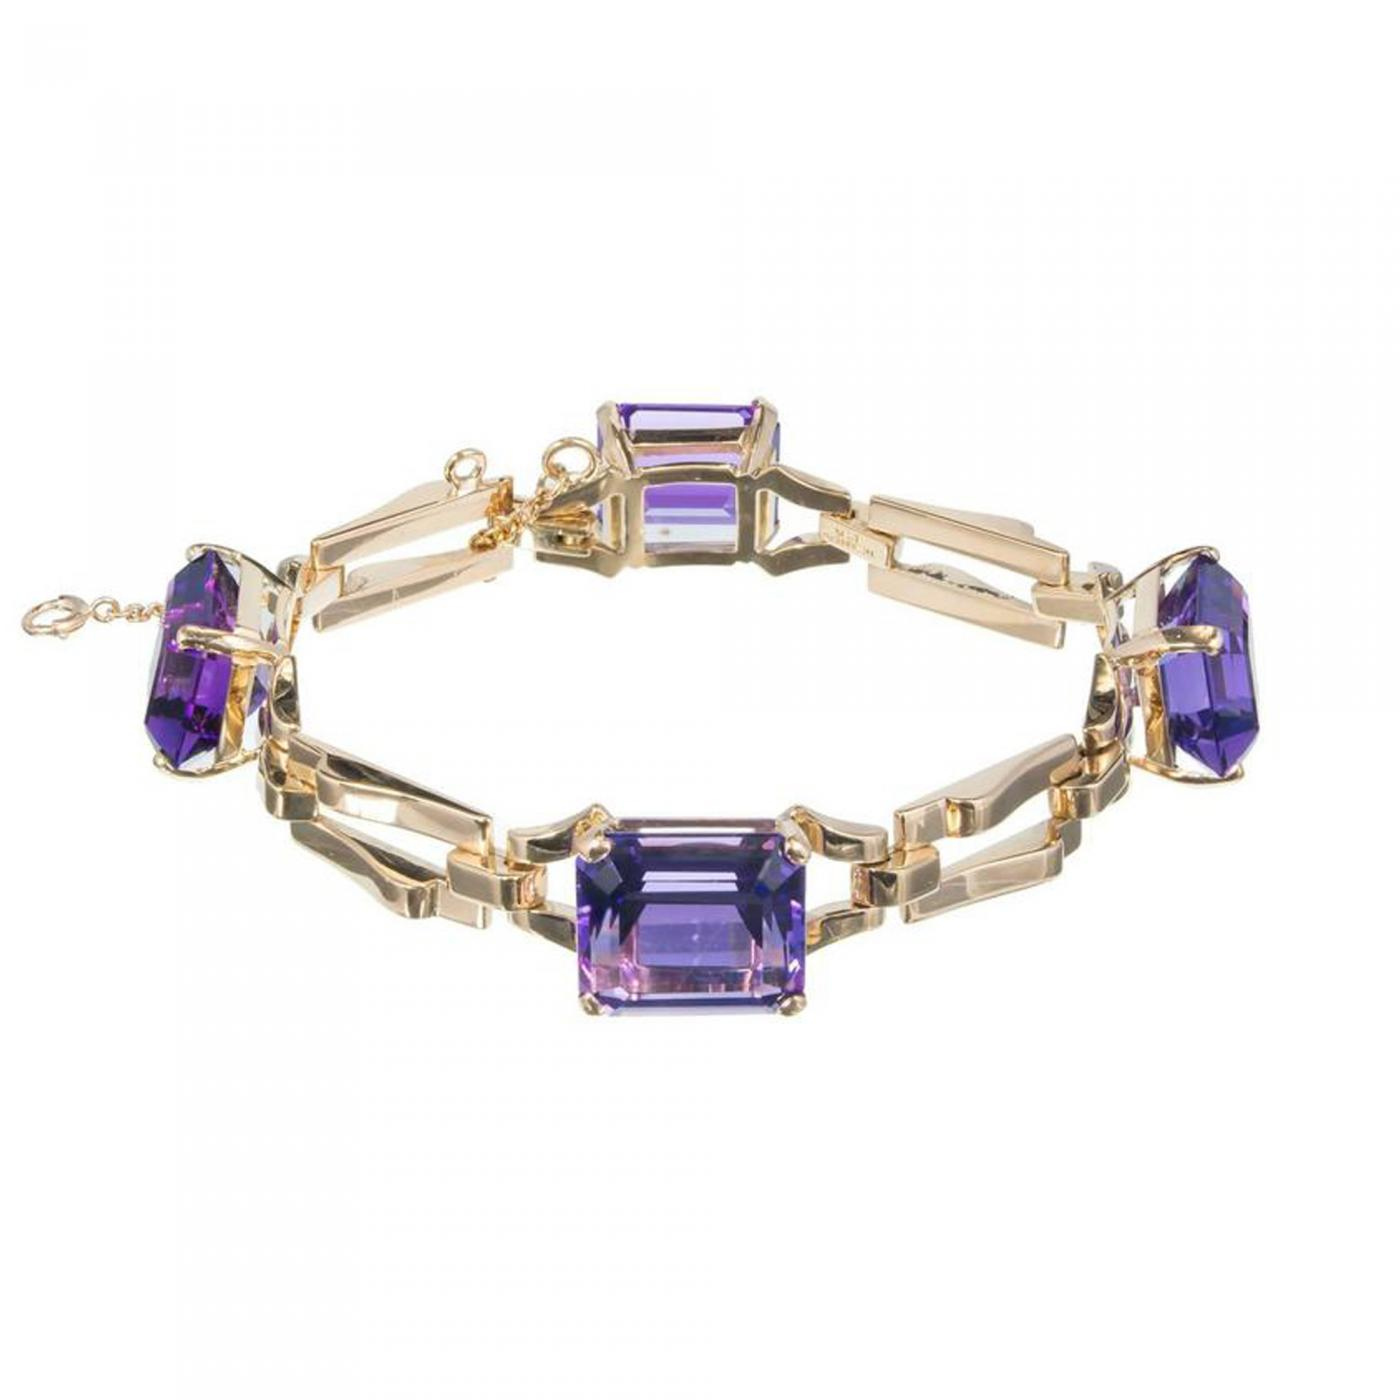 Tiffany and Co  - Tiffany & Co  Amethyst Yellow Gold Link Bracelet